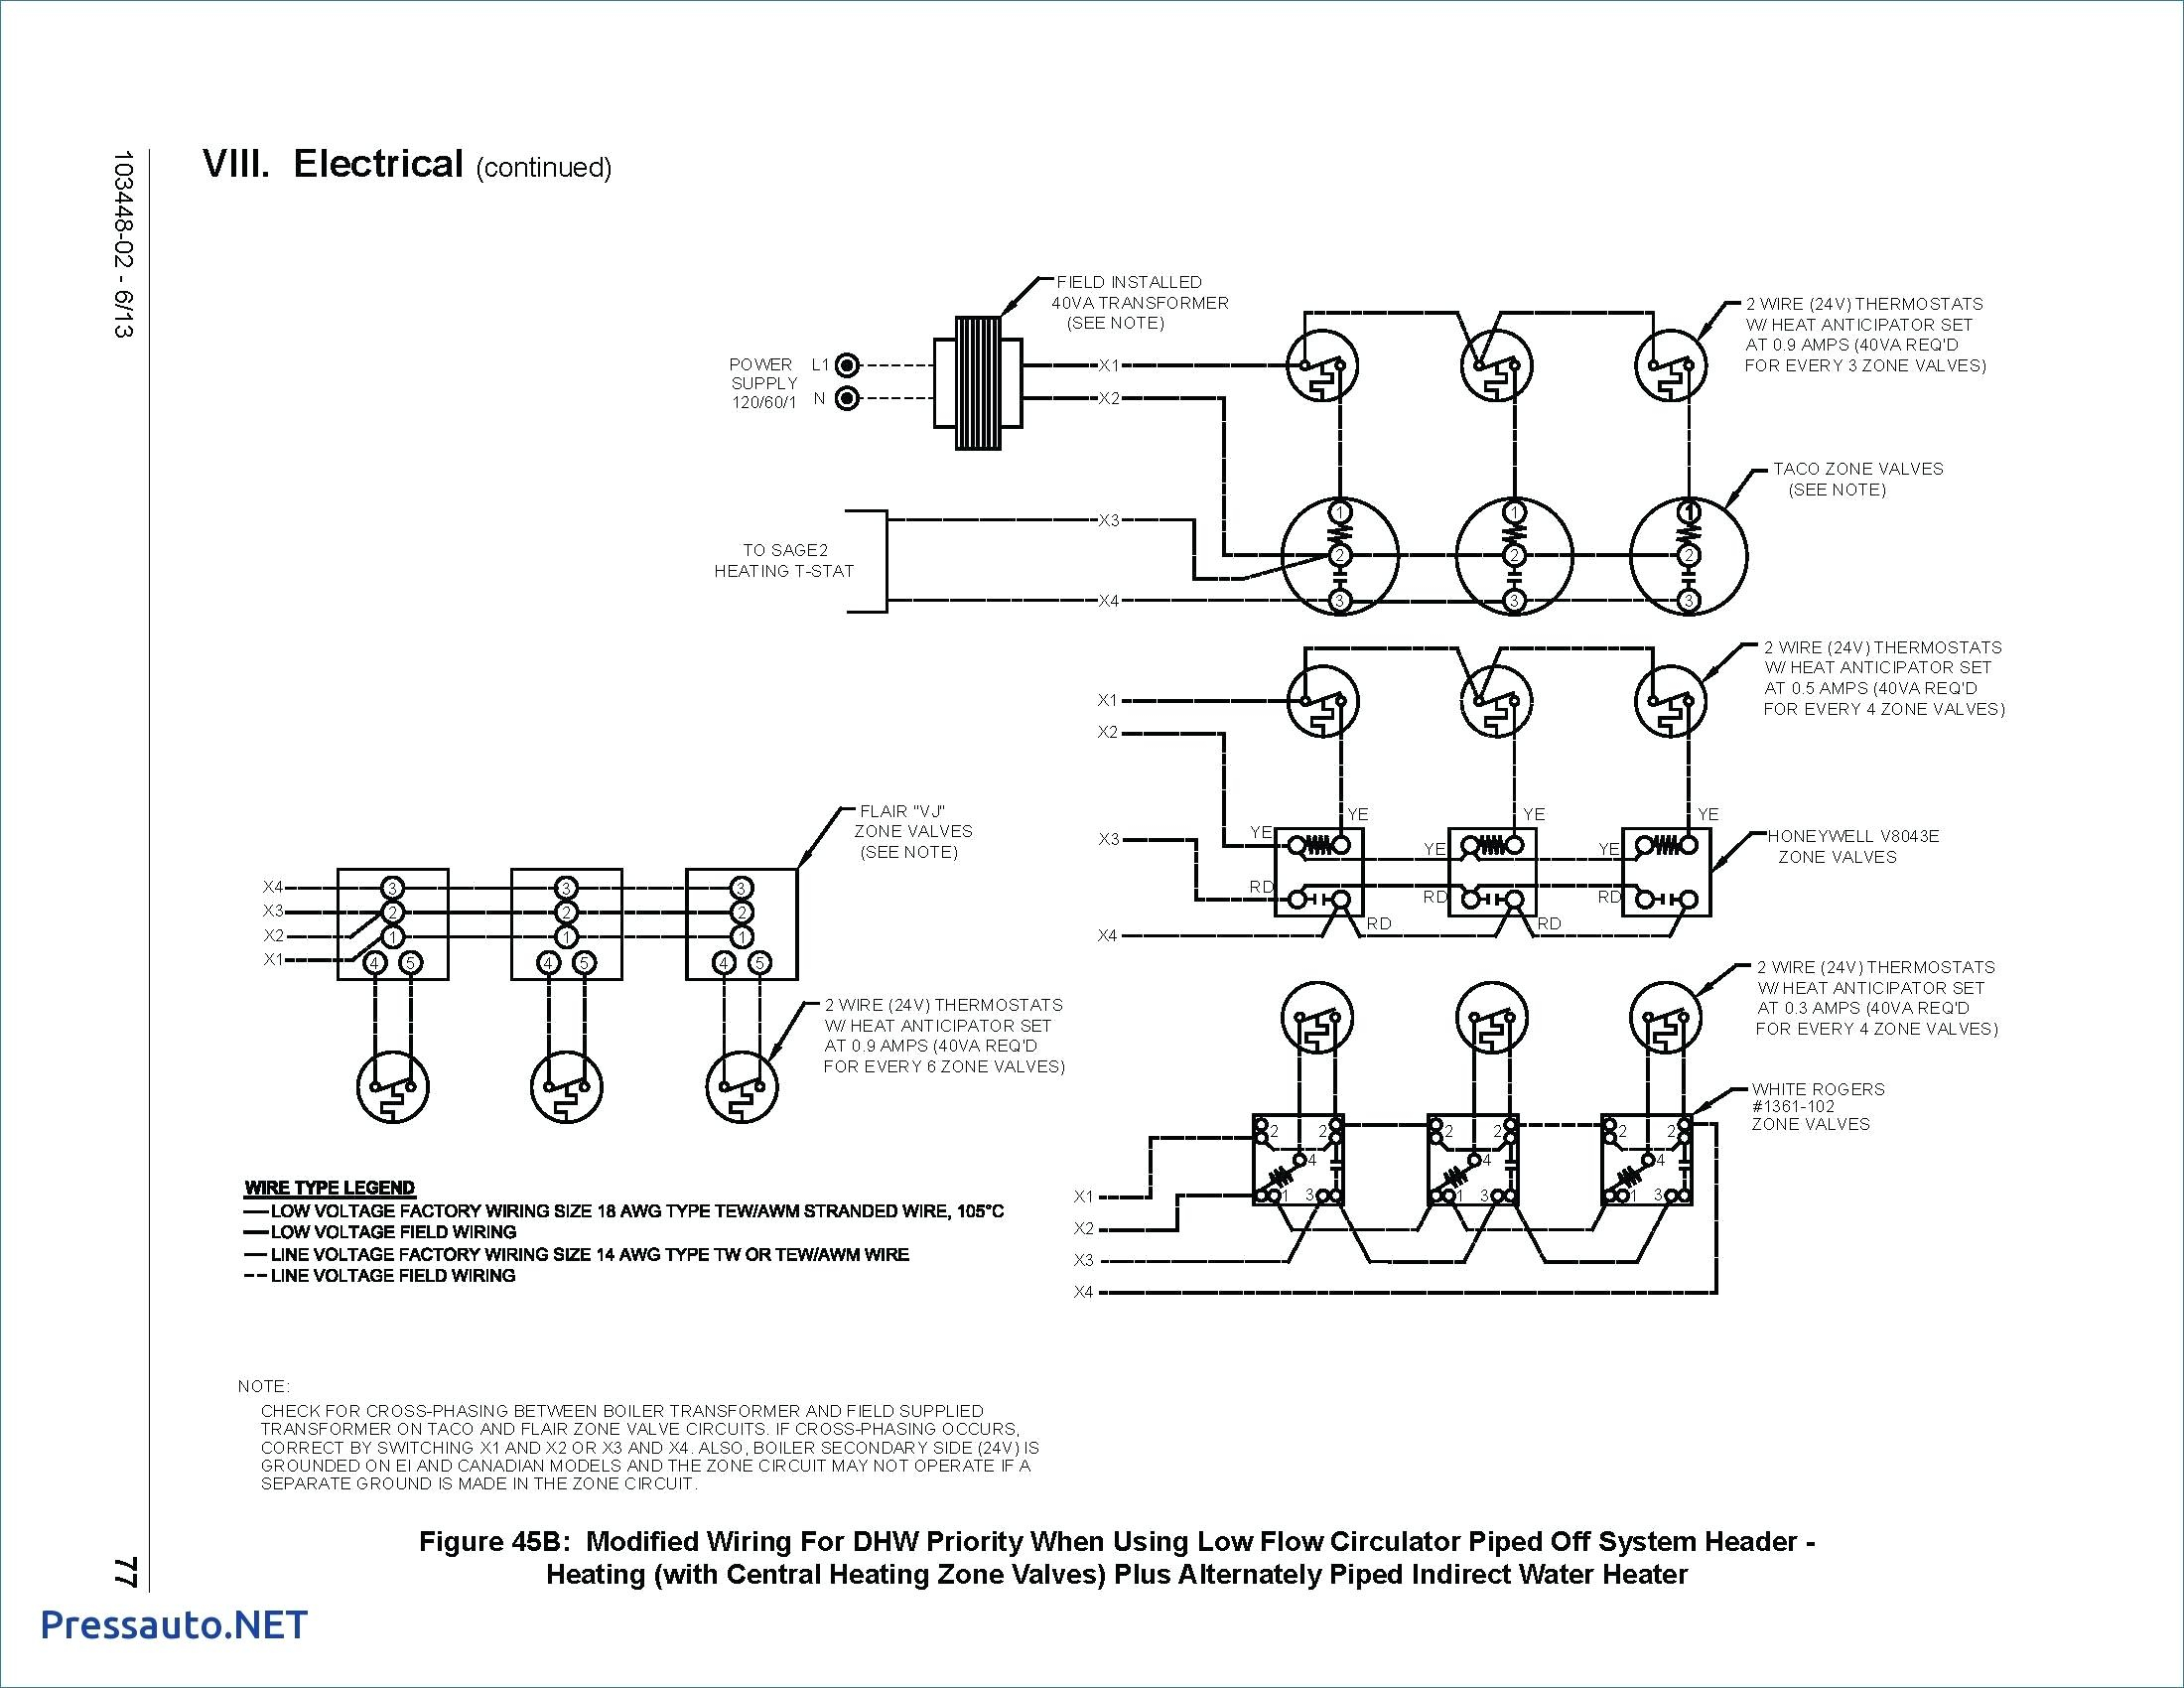 taco 006 b4 wiring diagram Download-Taco Circulator Pump Wiring Diagram Lovely 24v Transformer Wiring Diagram 240v Standalone to Power Many 16-t